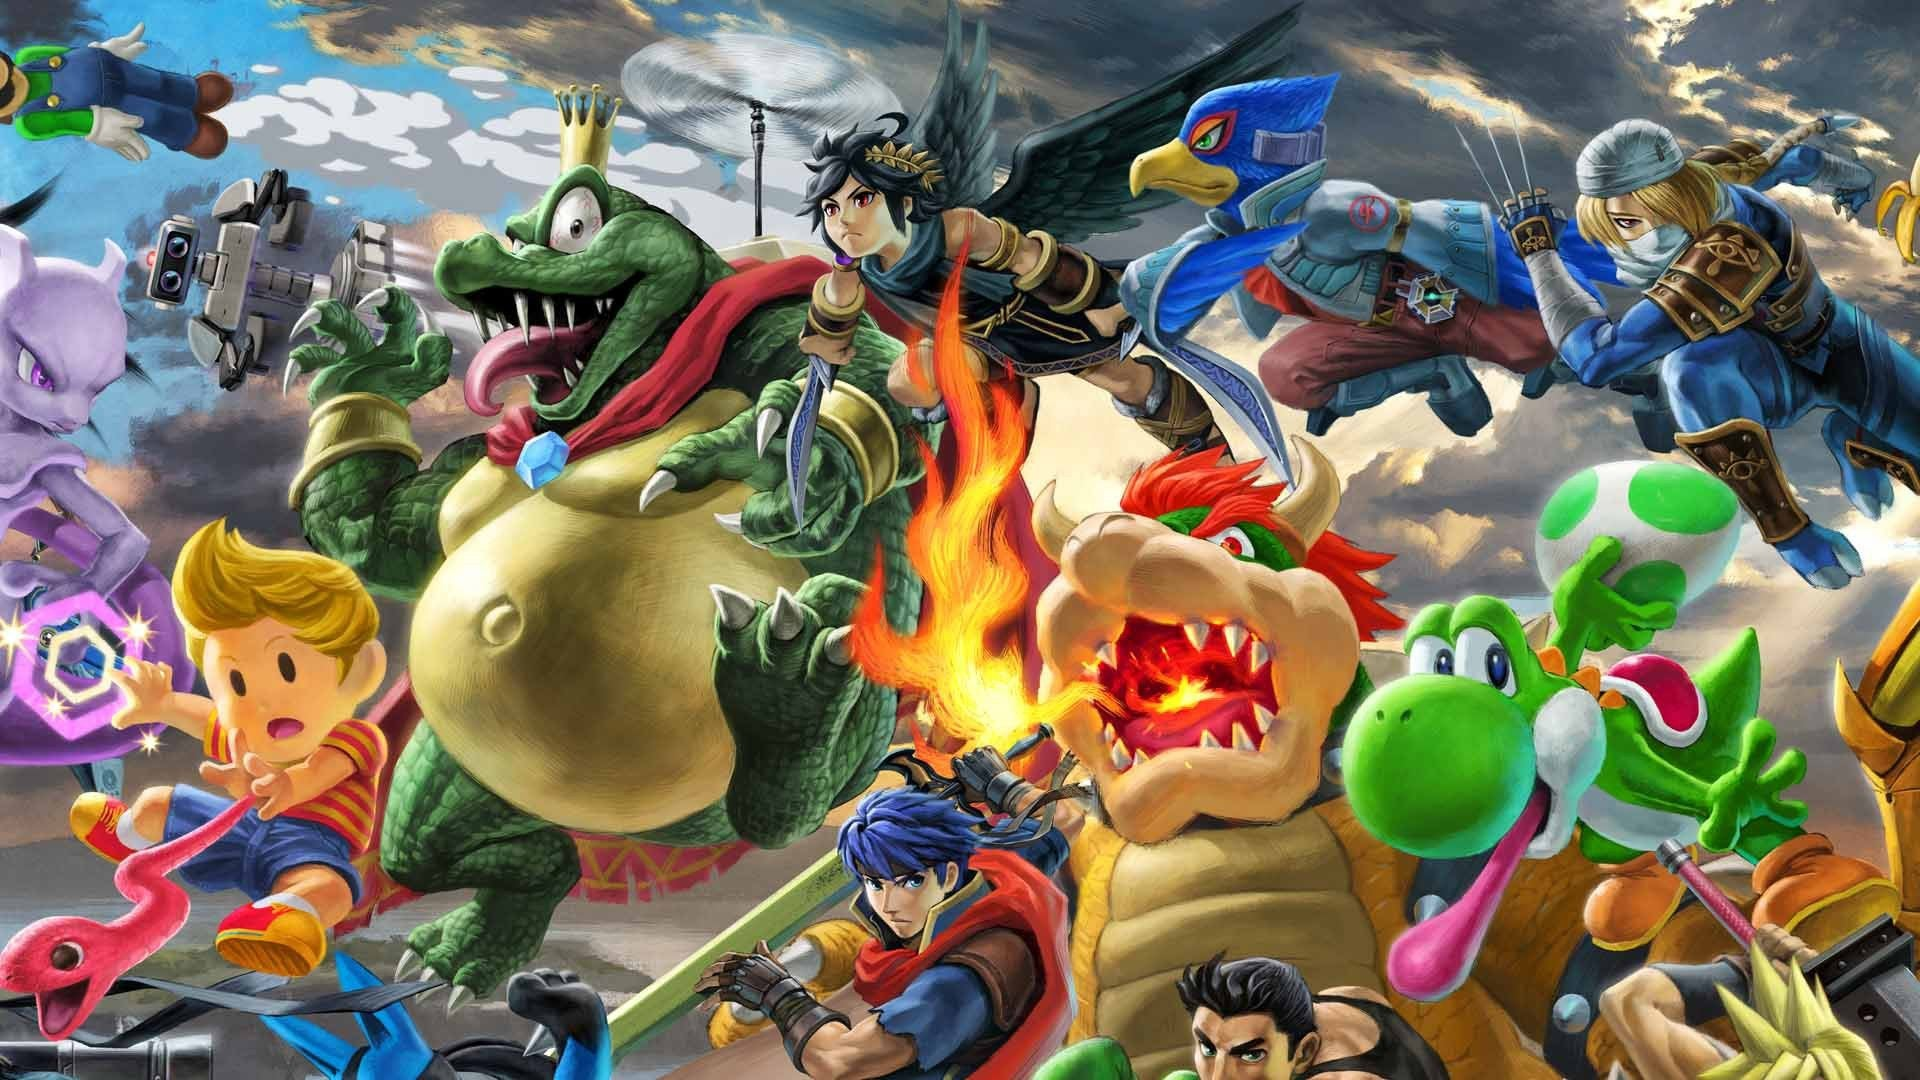 There Is No Sequel Planned After Super Smash Bros Ultimate